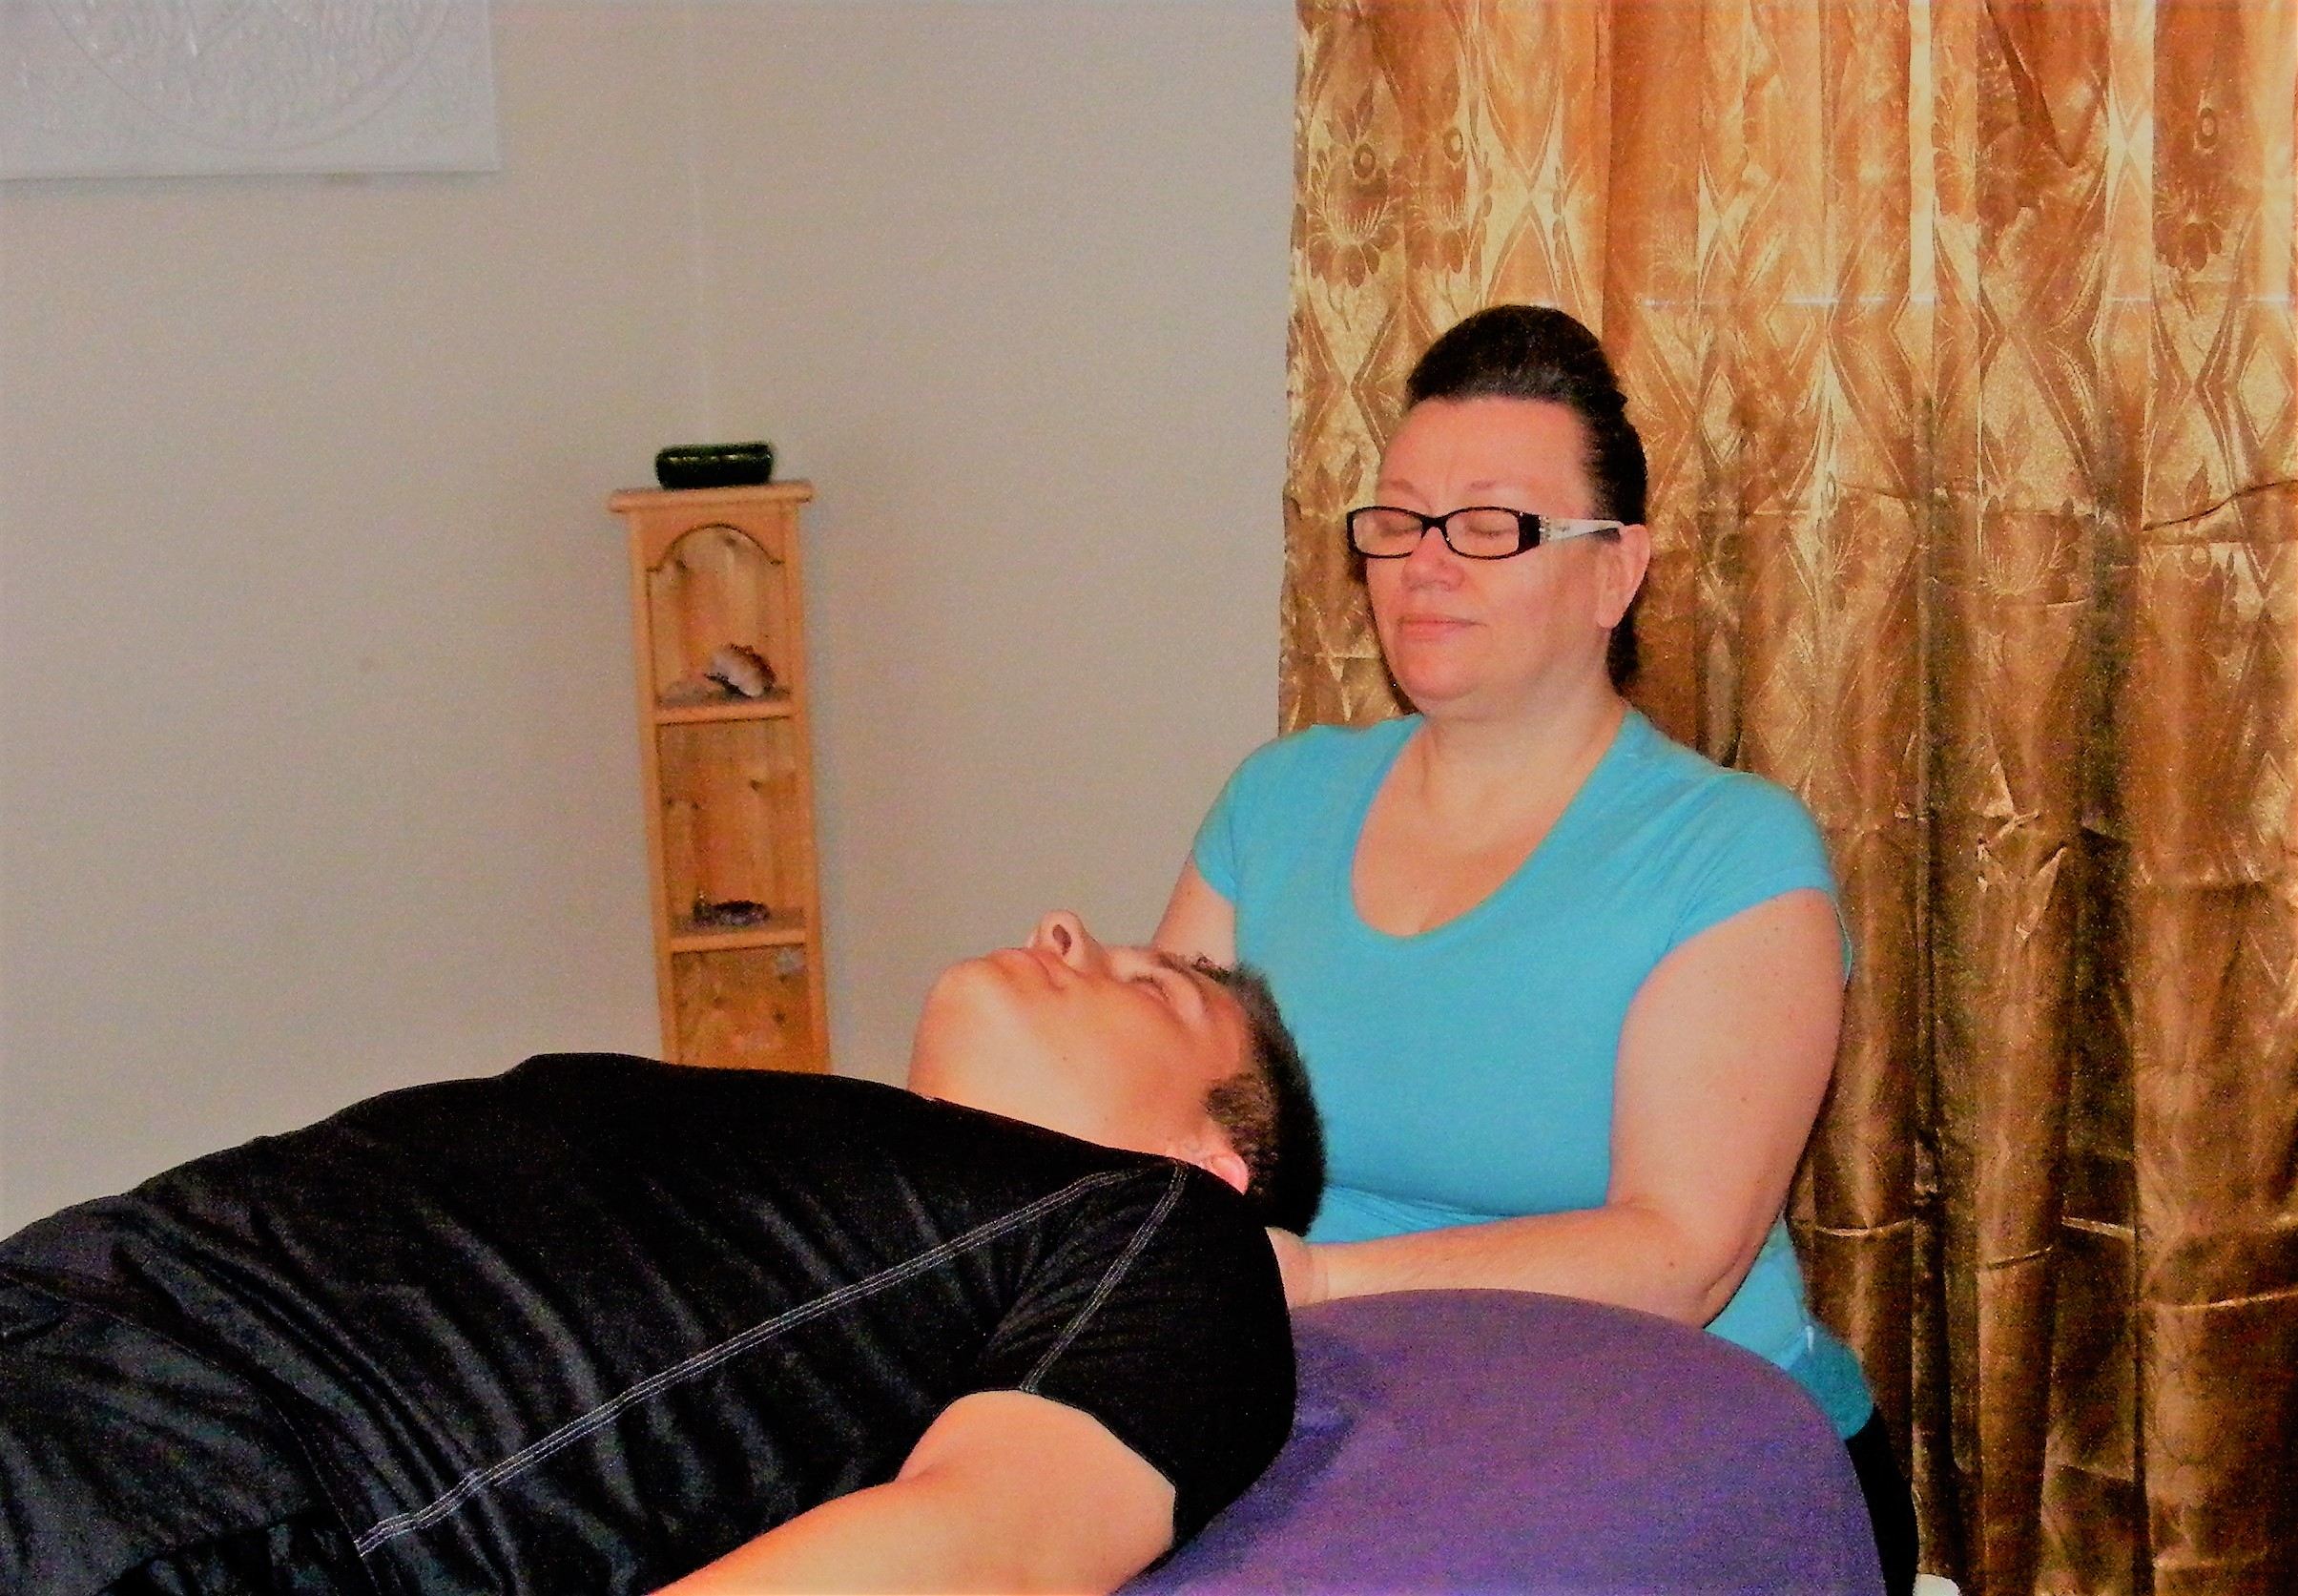 Reiki Learning - Reiki is very gentle, harmless healing system used to treat physical, mental, emotional, and spiritual ailments. It is considered a holistic approach for bringing balance and harmony to all aspects of a person. It can also be used for personal and spiritual awareness and growth, although reiki can stand alone as a healing system for those not wanting a spiritual practice. We offer workshops on reiki learning and gaining certifications in reiki I, II, & III.